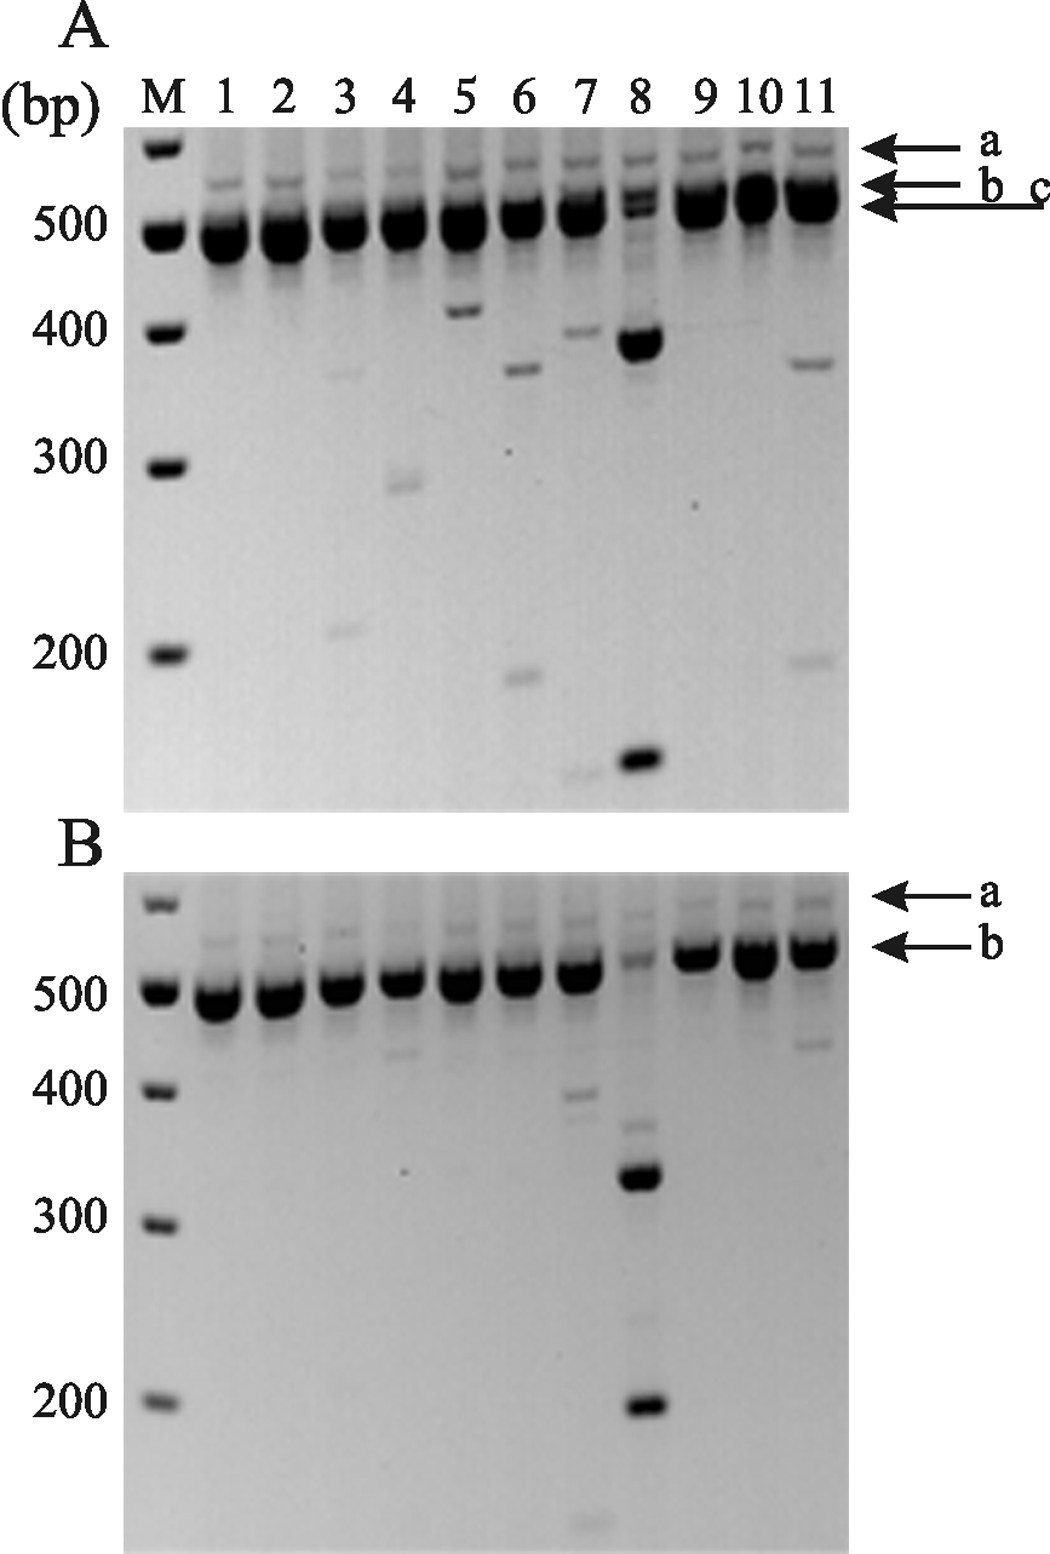 http://static-content.springer.com/image/art%3A10.1186%2F1744-8069-7-32/MediaObjects/12990_2011_Article_386_Fig1_HTML.jpg